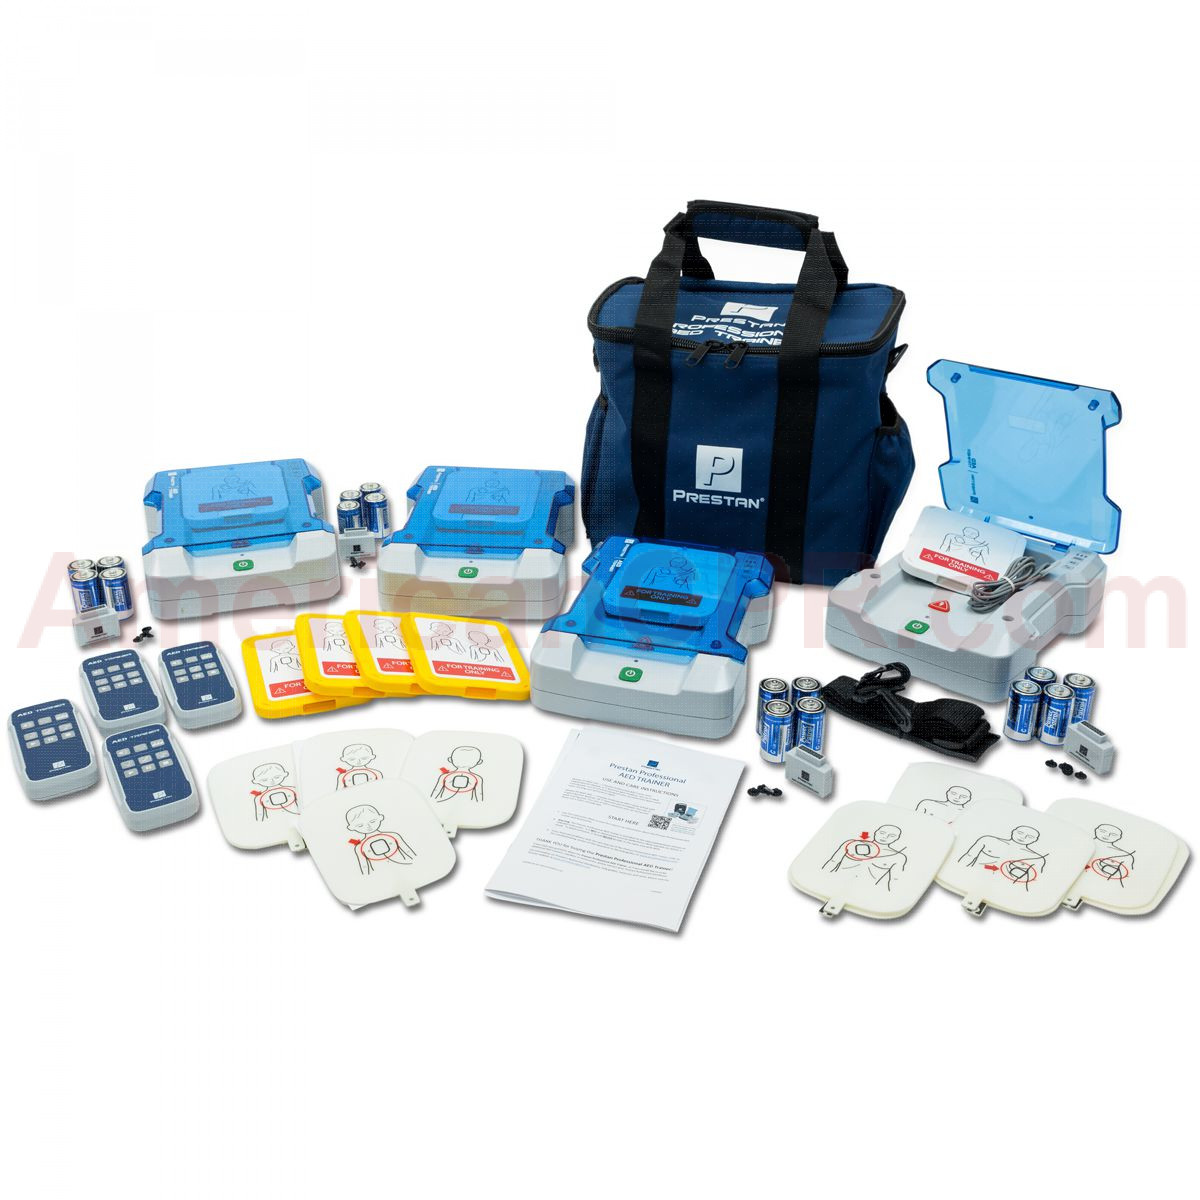 Prestan Professional AED Trainer Kit, 4 Pack, Prestan Products